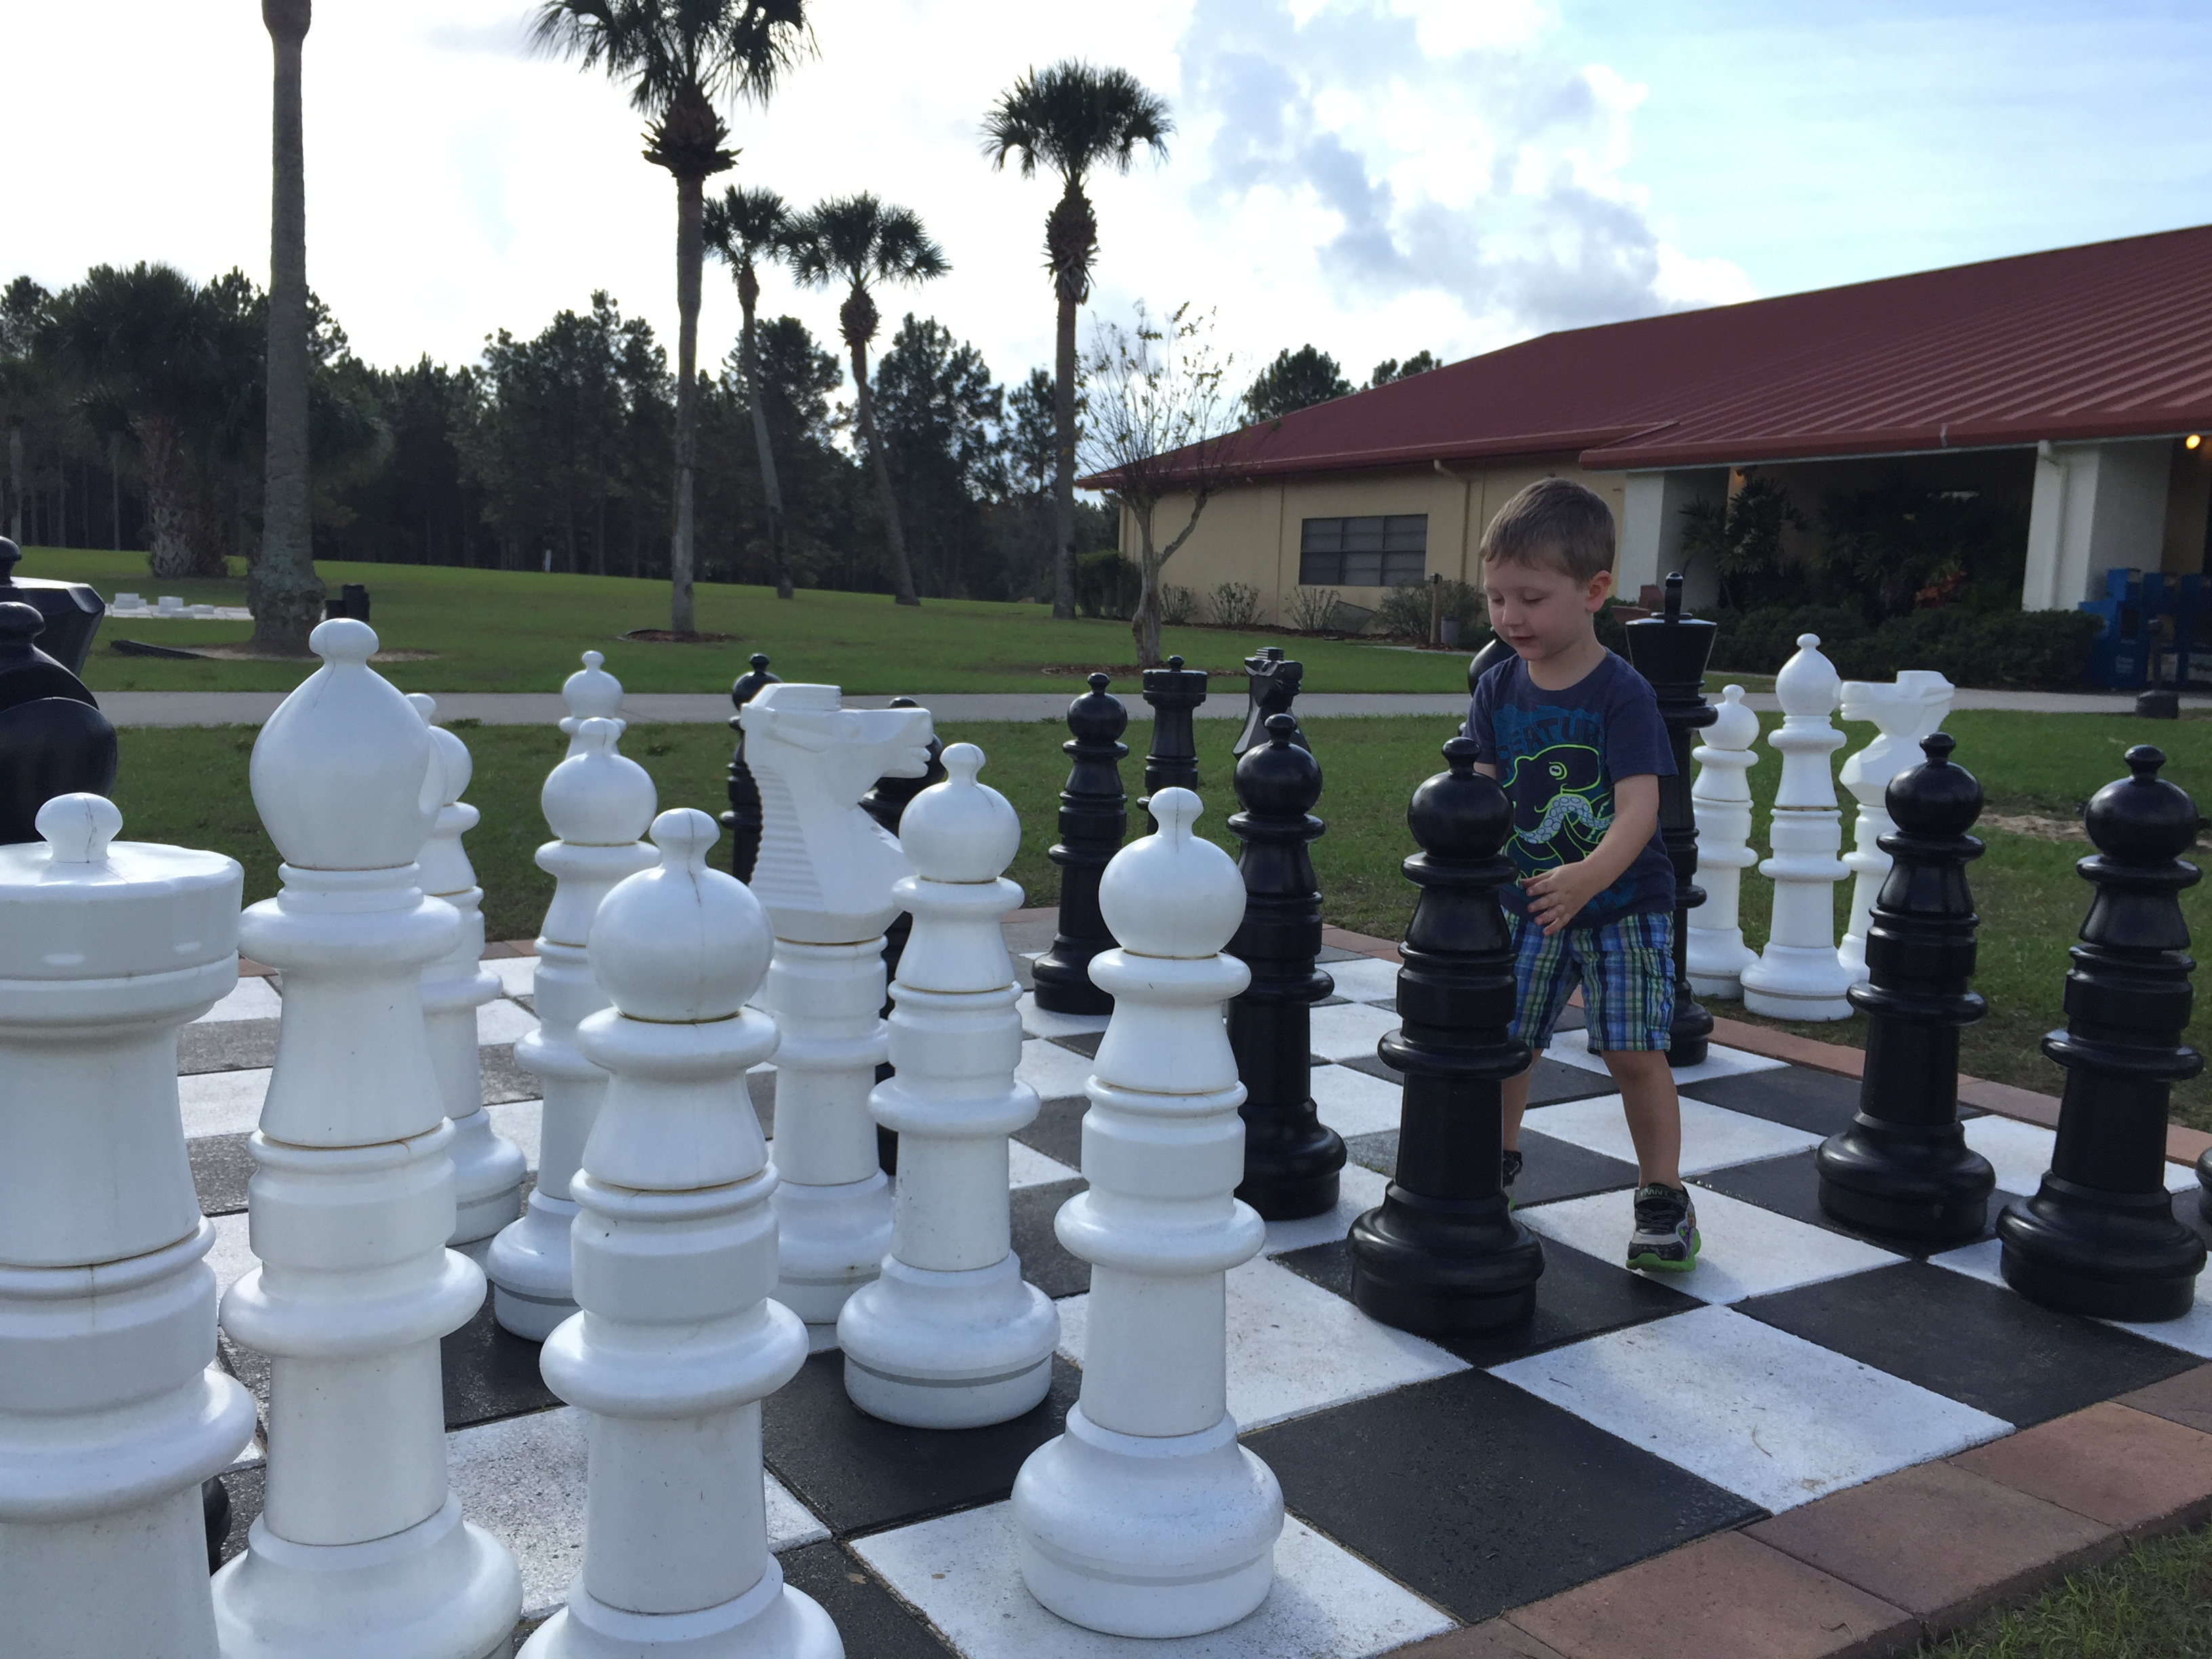 kid playing chess at a Thousand Trails campground